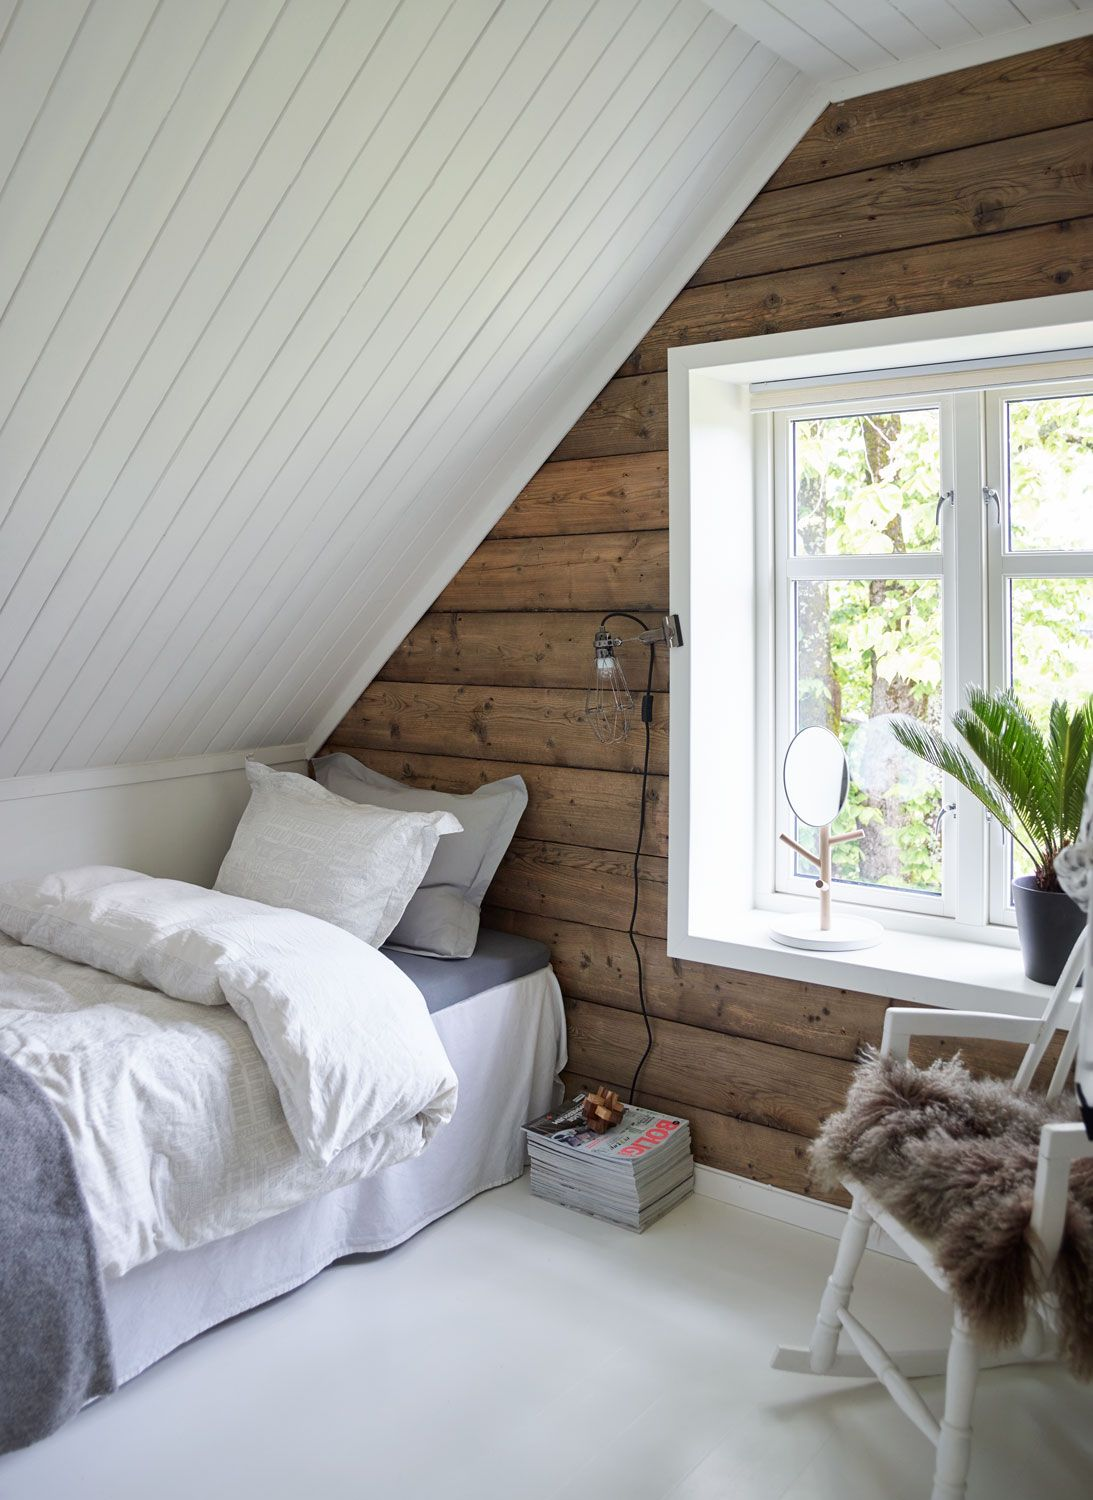 Attic bedroom design and d cor tips small attic bedrooms for Attic room decoration